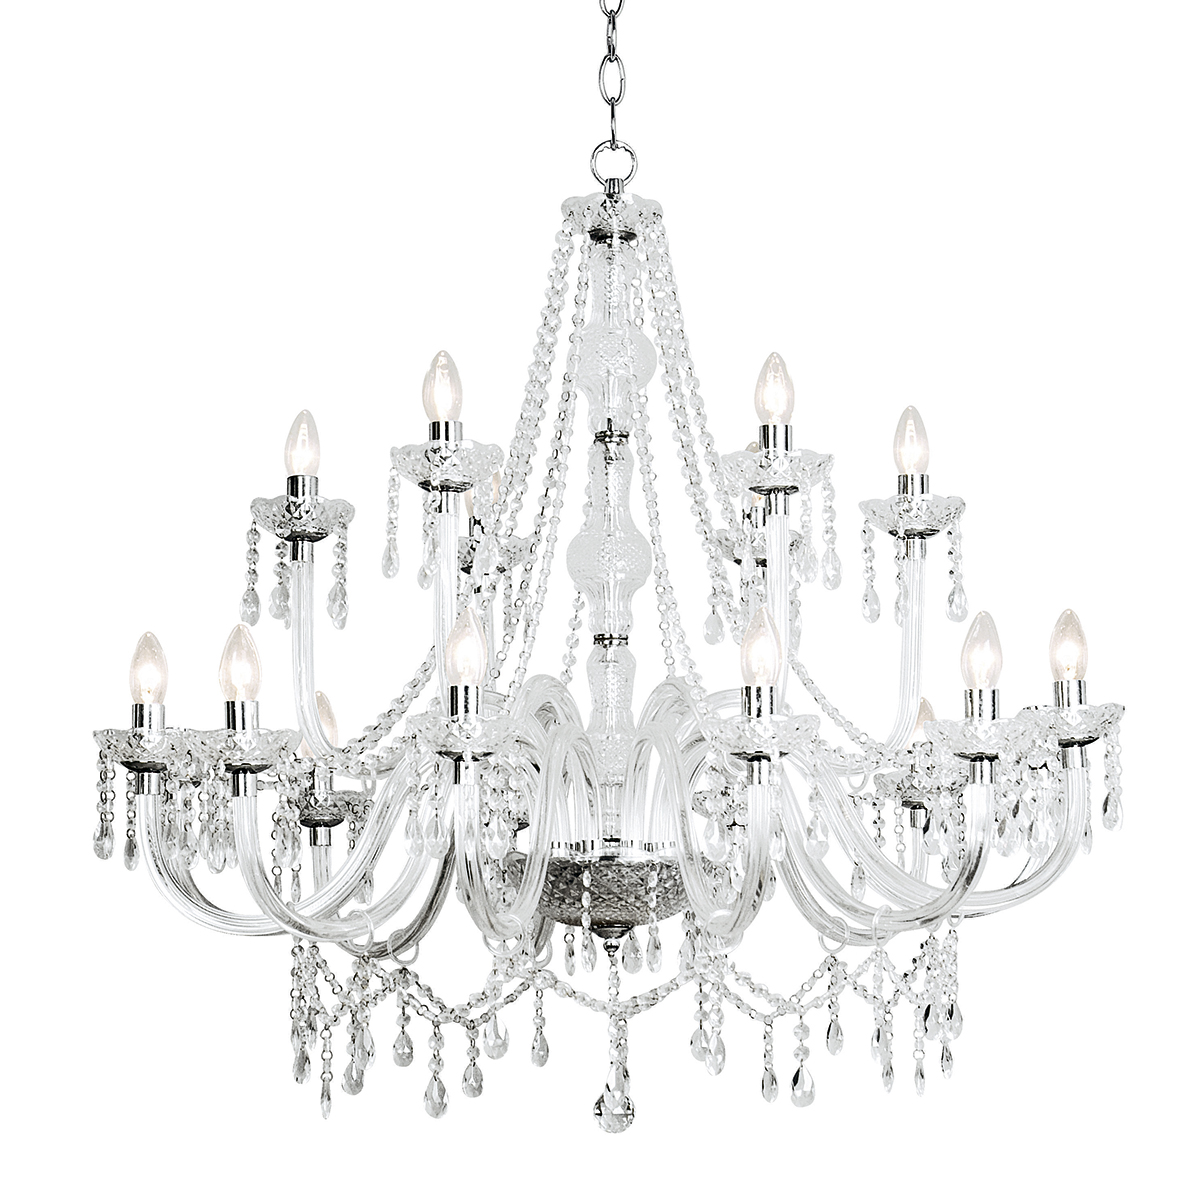 Cup Light Chandelier Classic